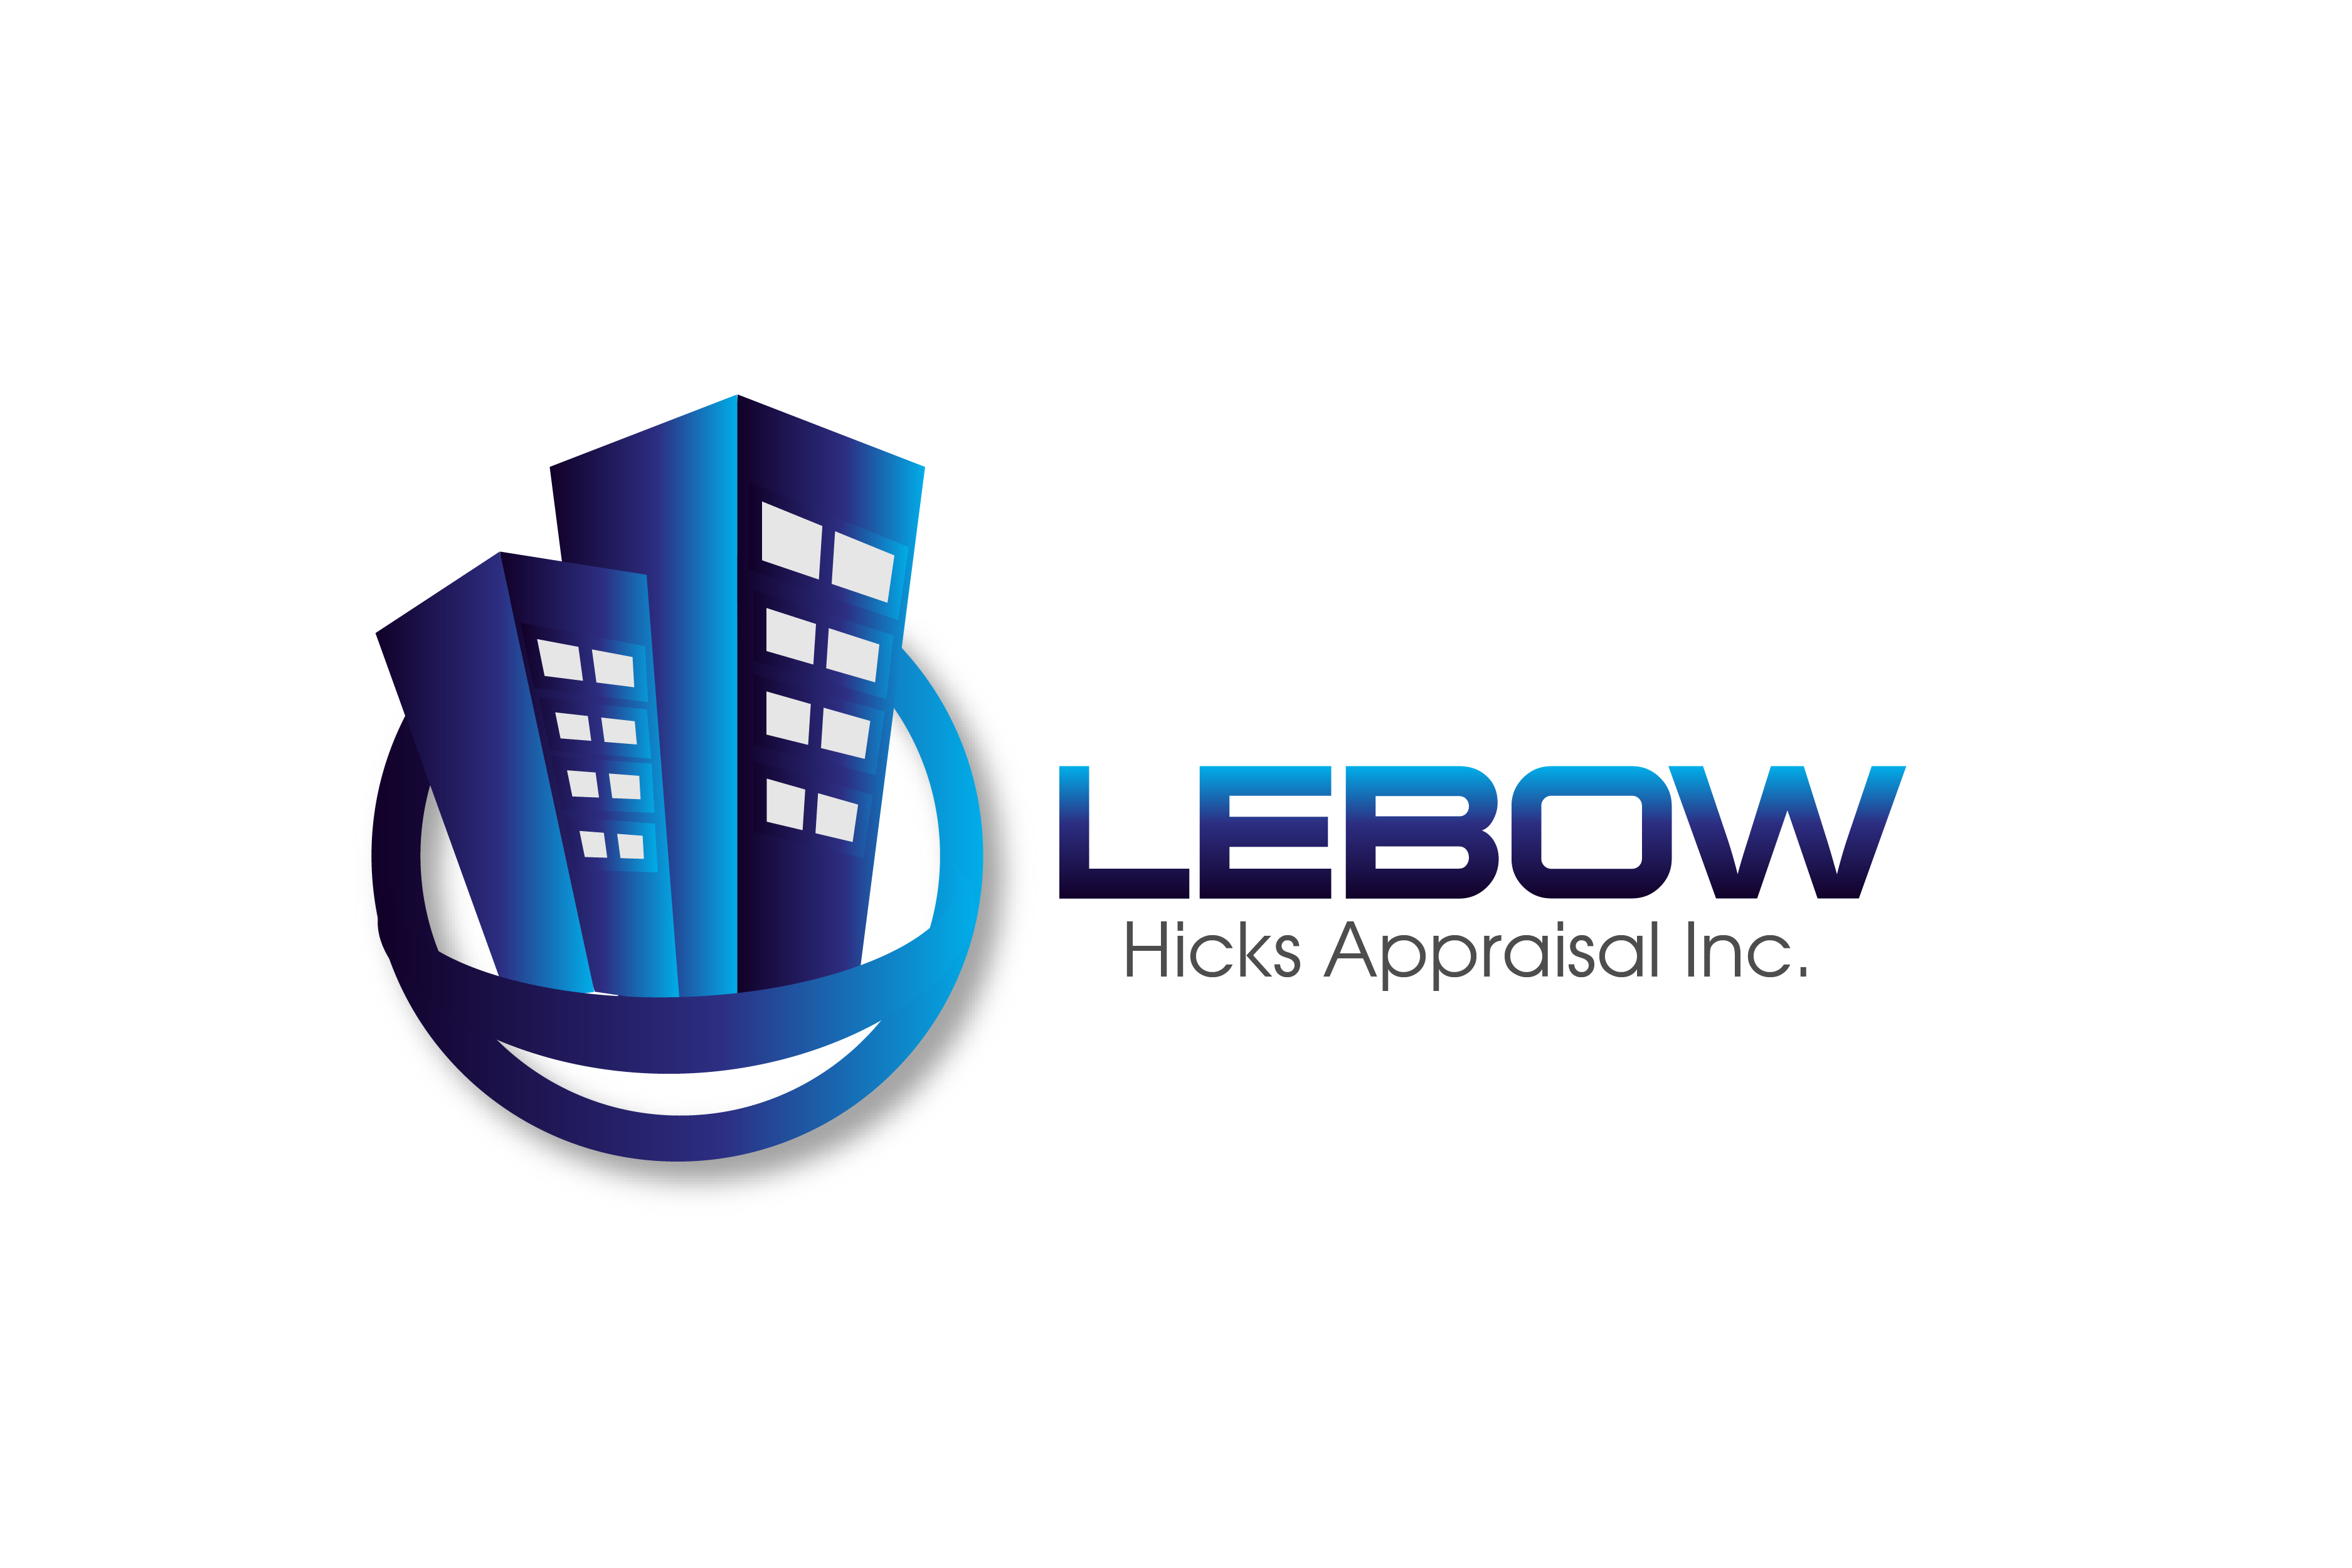 Logo Design by Private User - Entry No. 118 in the Logo Design Contest Fun Logo Design for Lebow, Hicks Appraisal Inc..